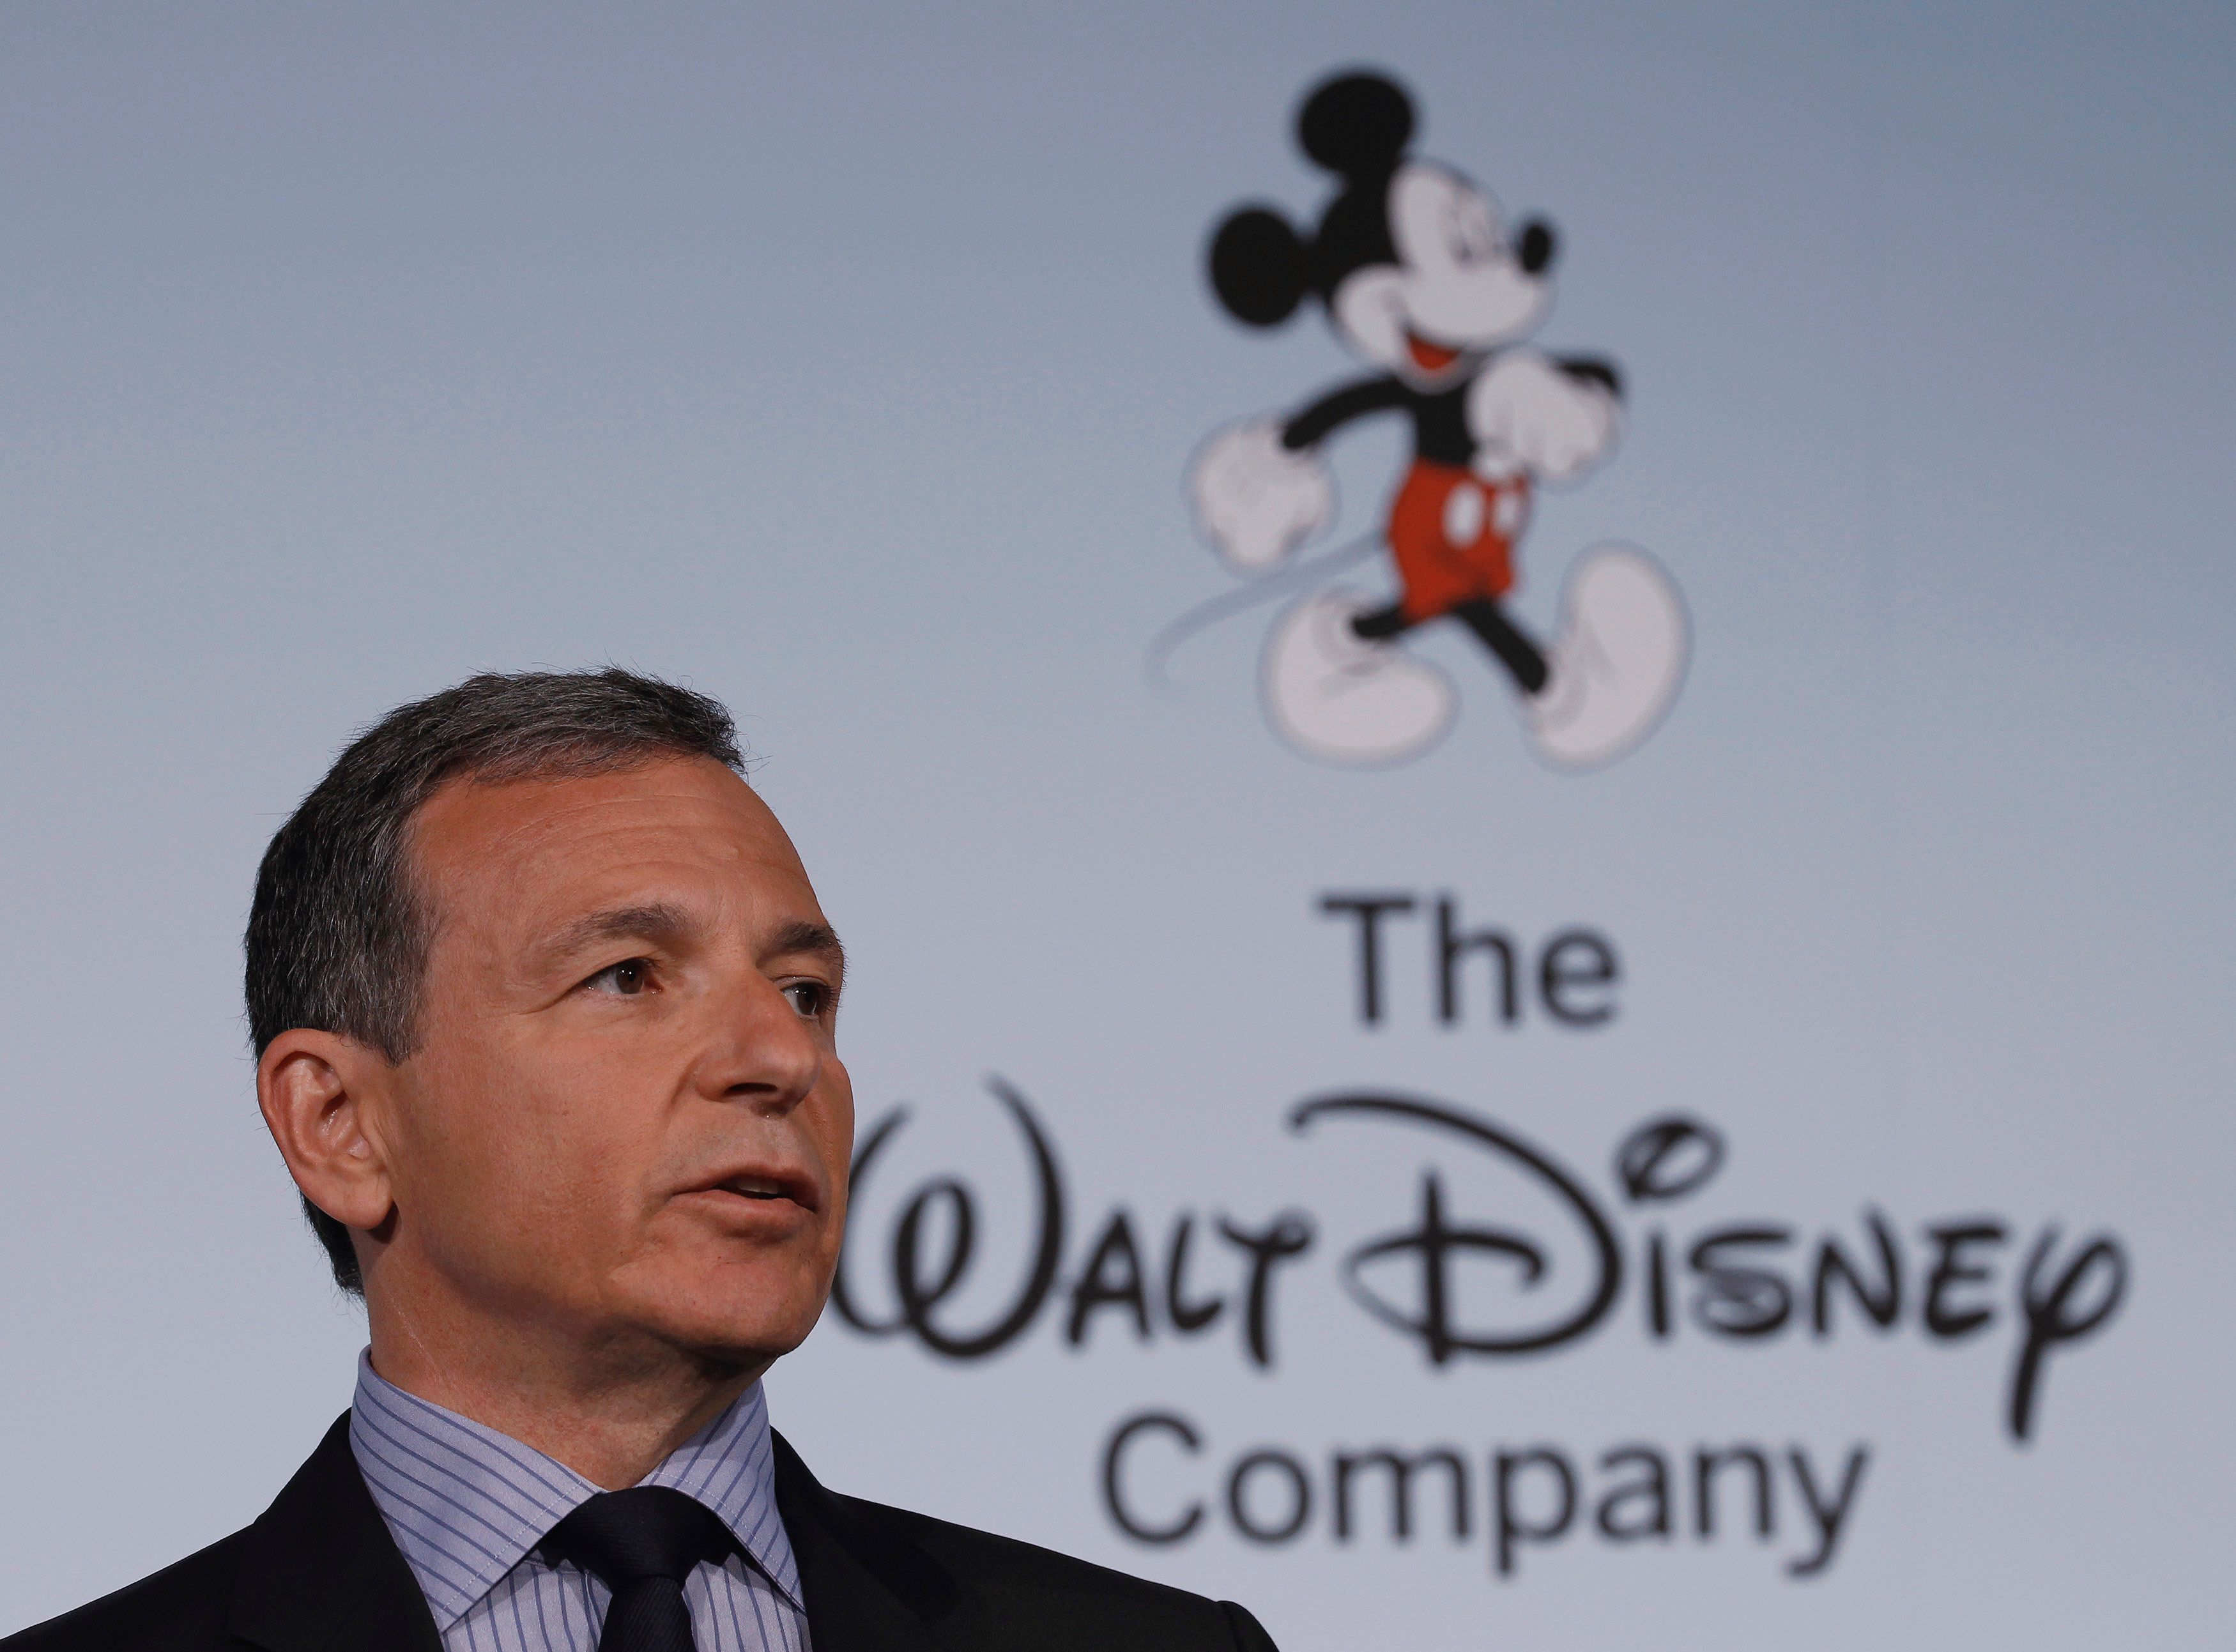 Walt Disney Company Chairman and Chief Executive Officer Robert Iger announces Disney's new standards for food advertising on their programming targeting kids and families at the Newseum in Washington June 5, 2012. REUTERS/Gary Cameron/File Photo